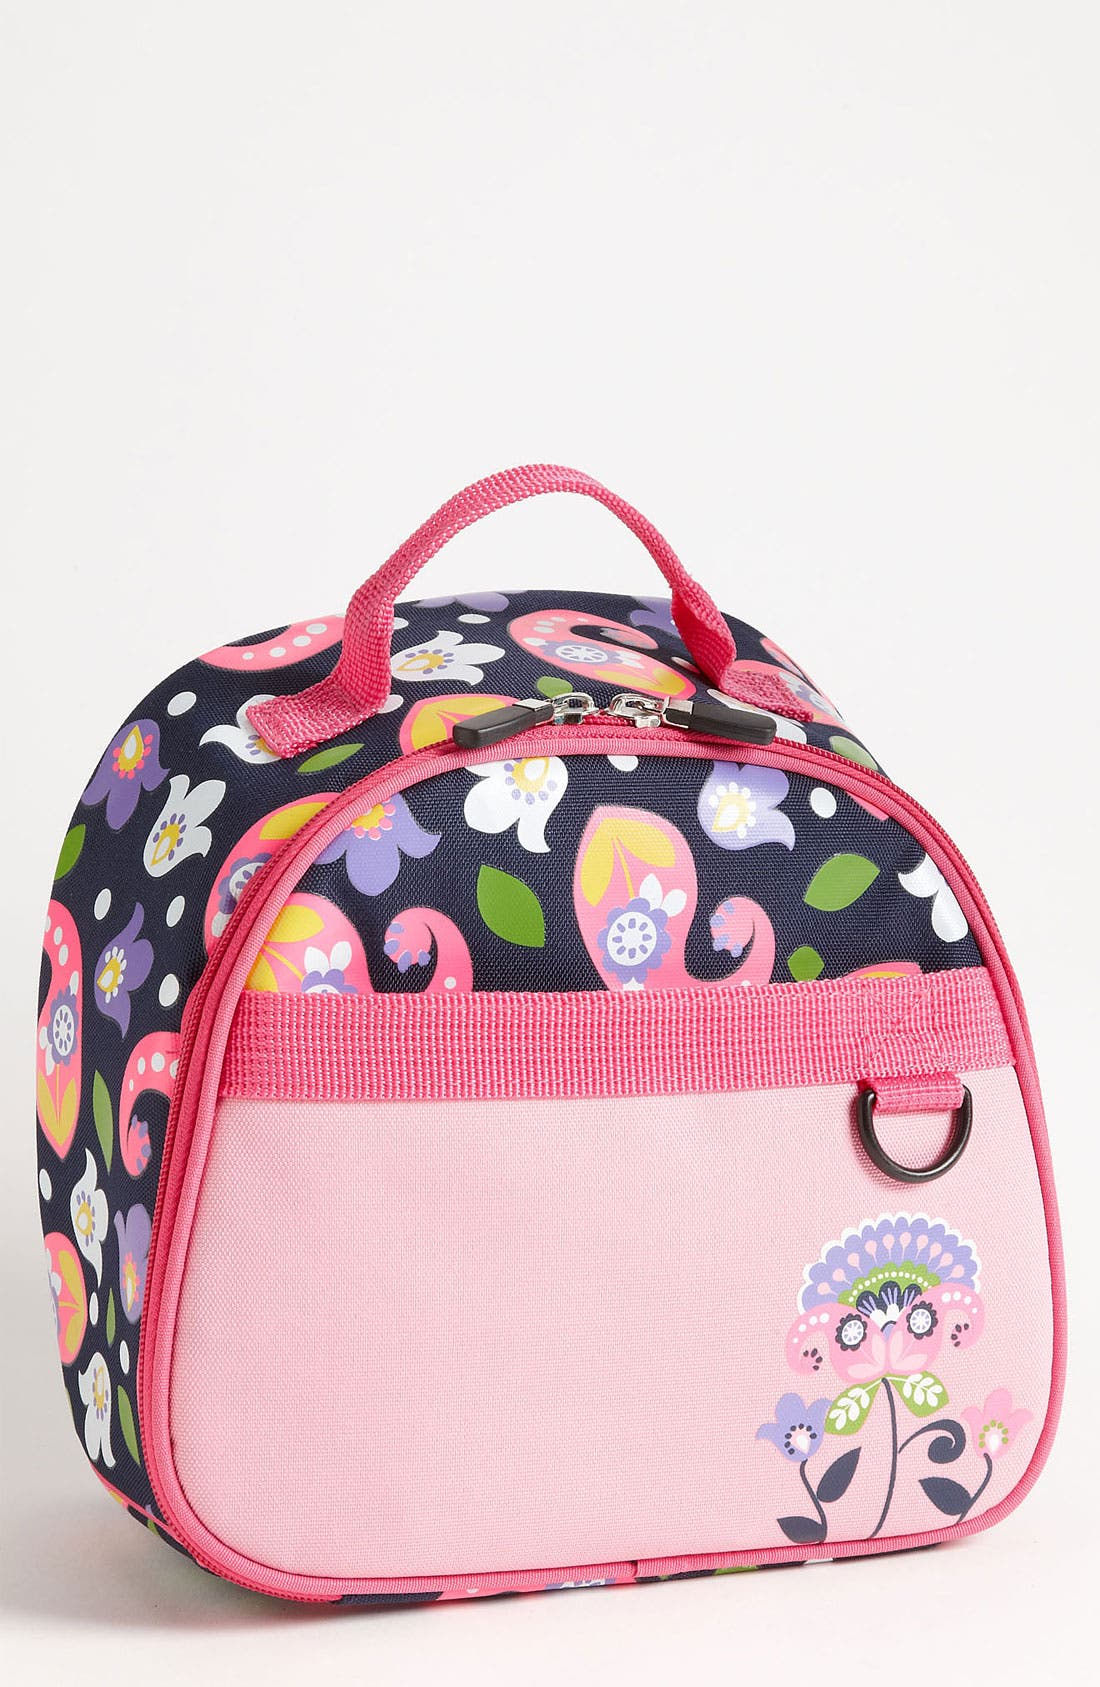 Main Image - Hanna Andersson Lunch Bag (Girls)